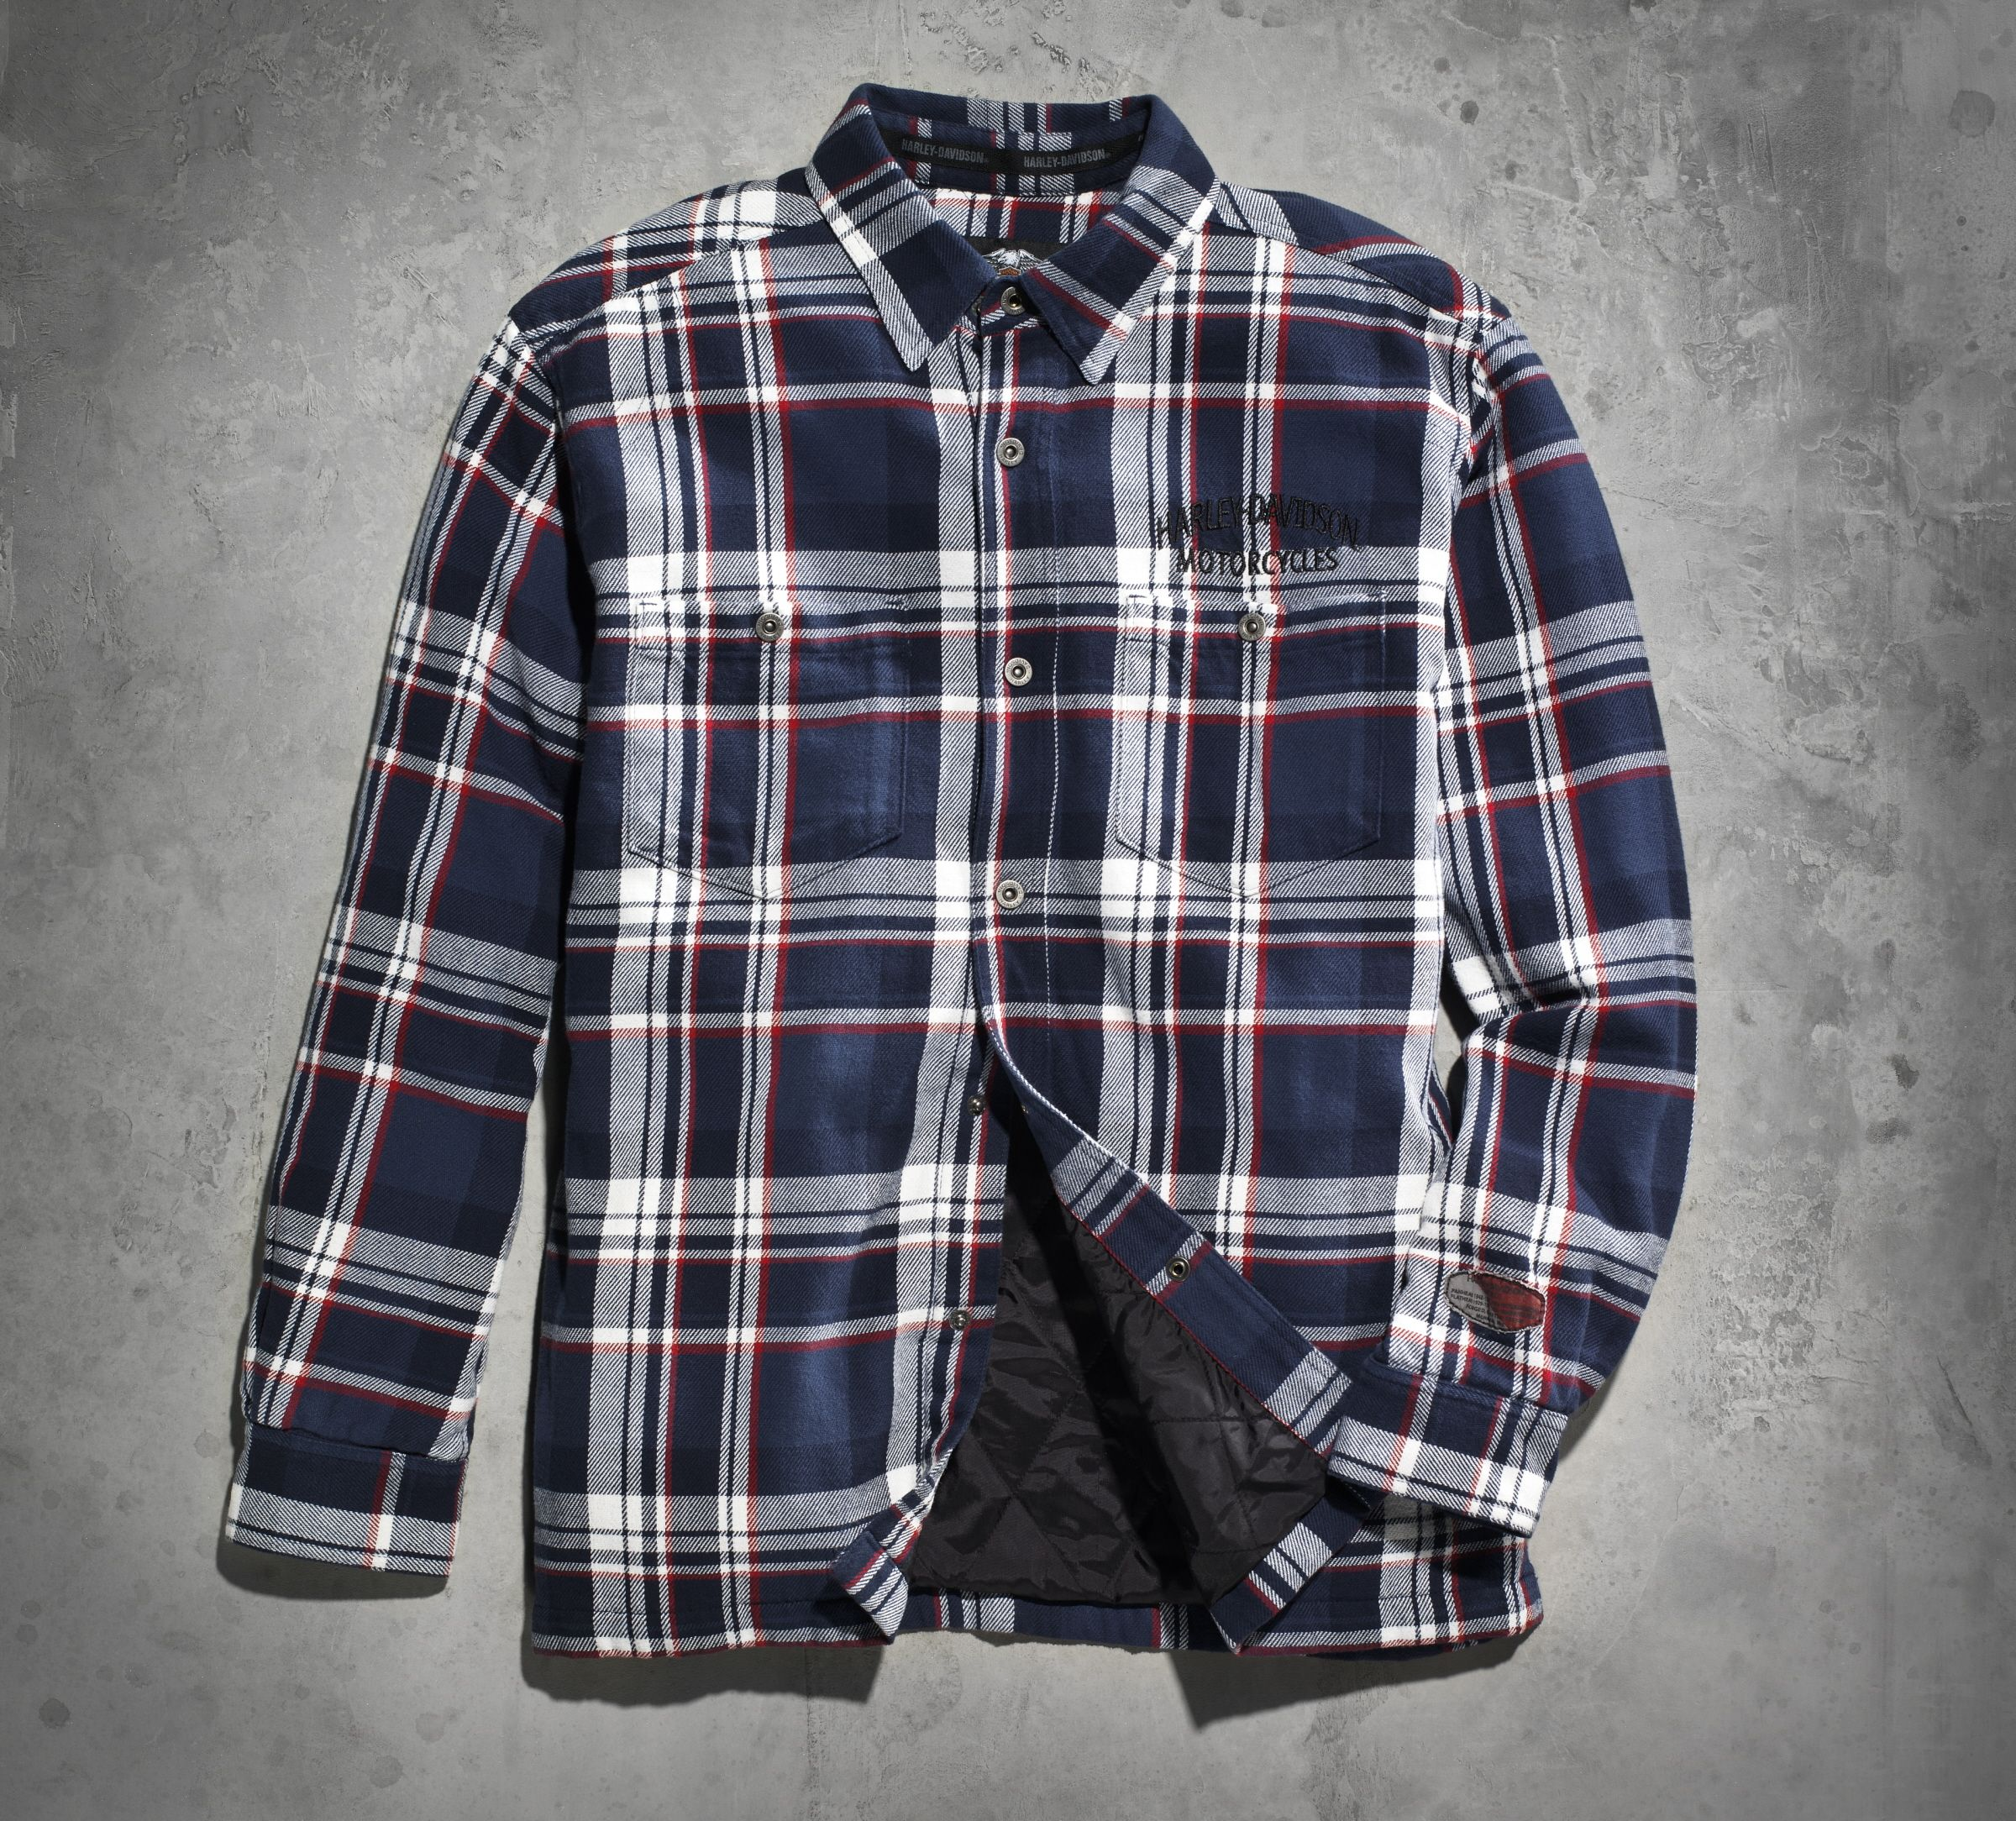 A style that has stood the test of time. | Harley-Davidson Men's ...